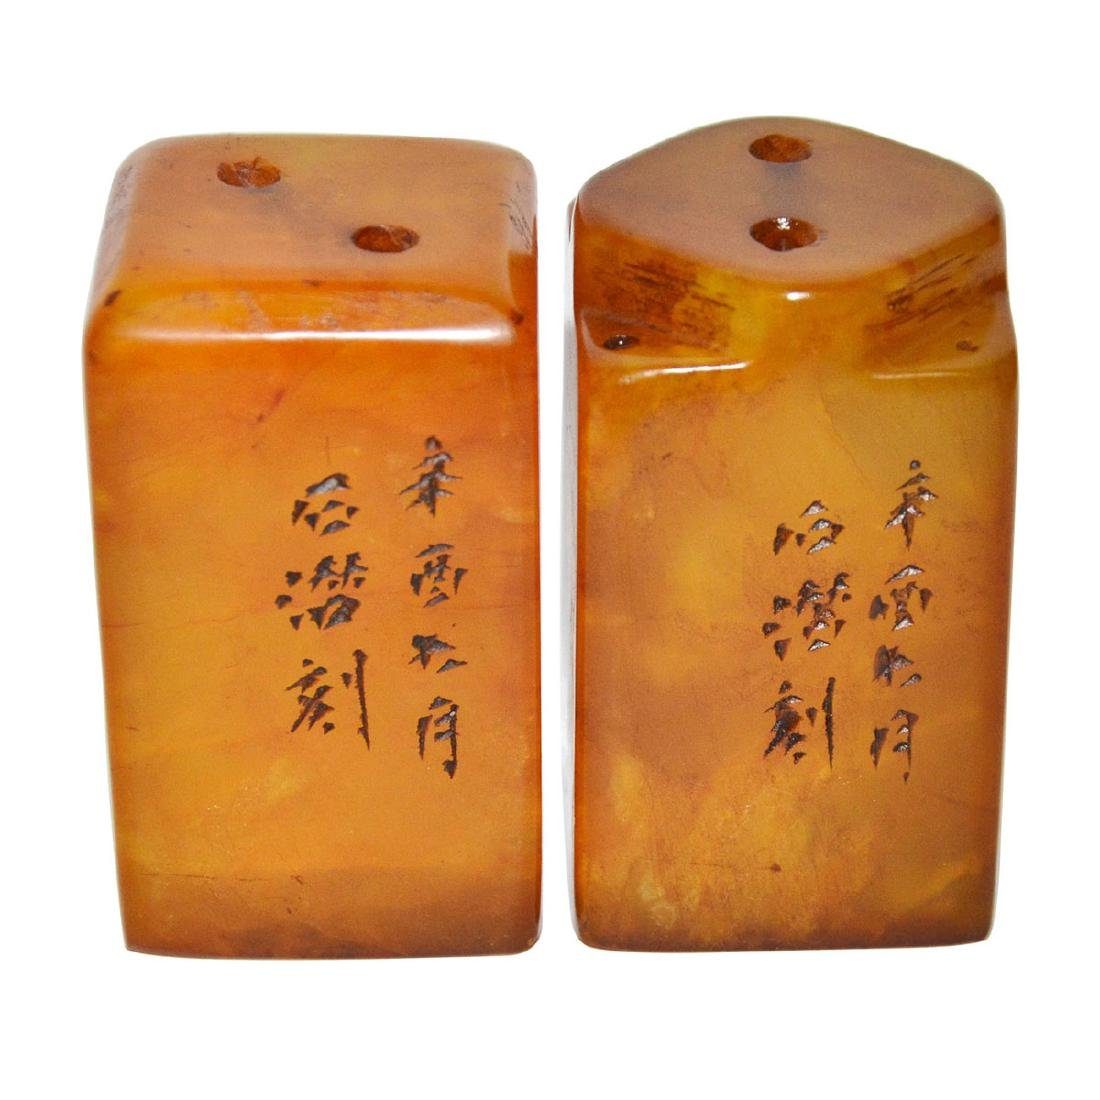 Two Tianhuang Columnar Square Stone Seals